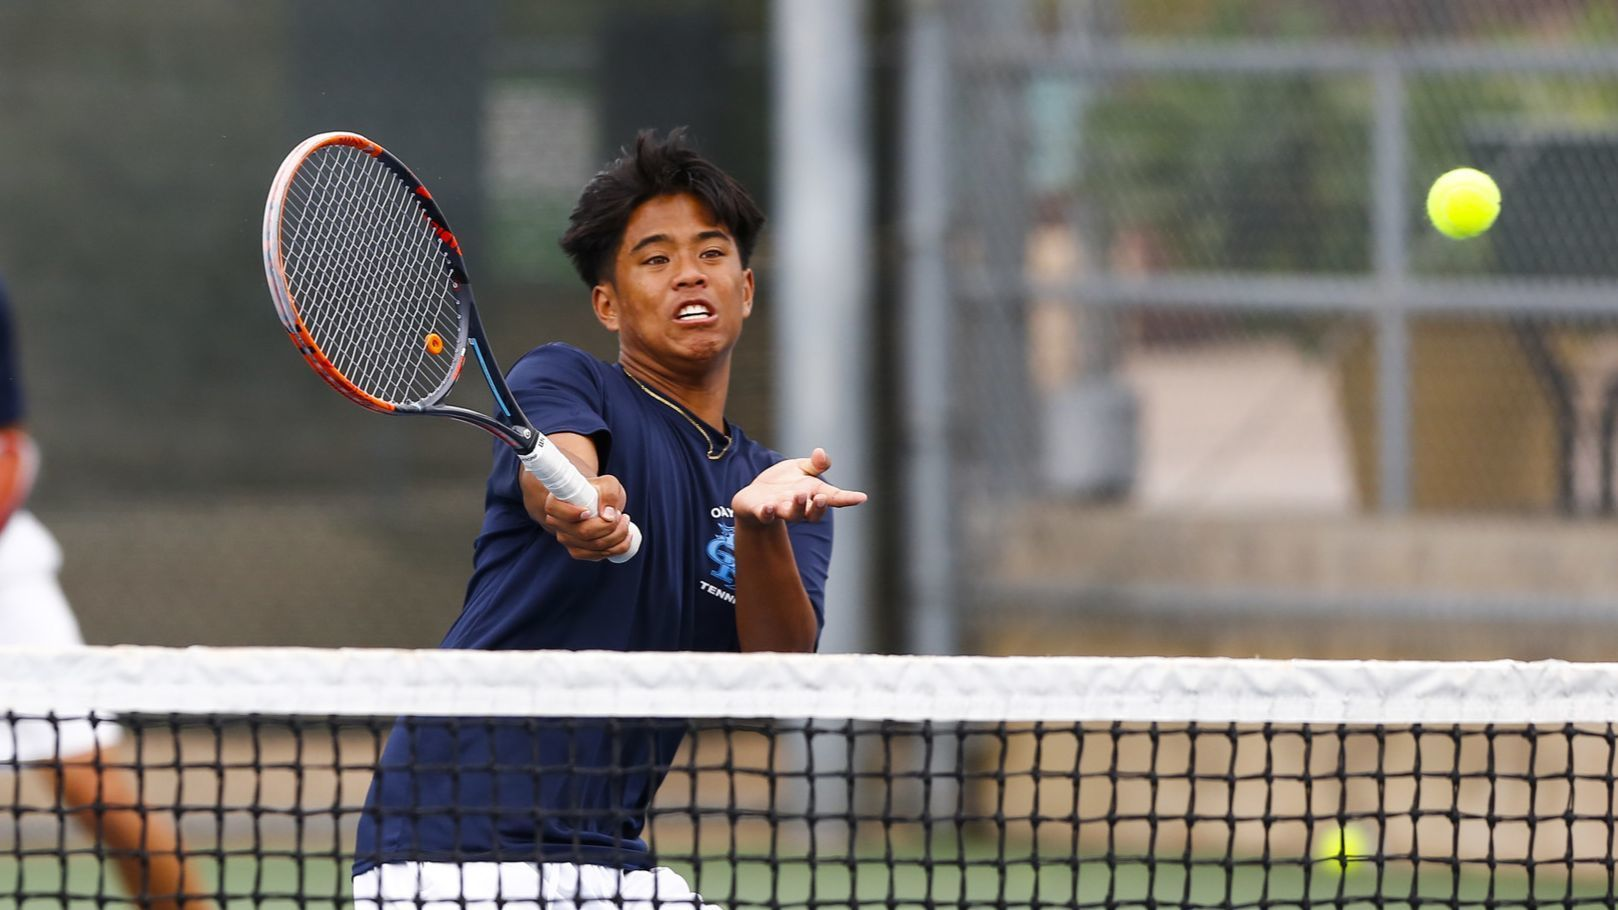 Otay Ranch's Daniel Dulay hits a volley at net as Matthew Lanahan stays back during their first set against Rancho Bernardo.